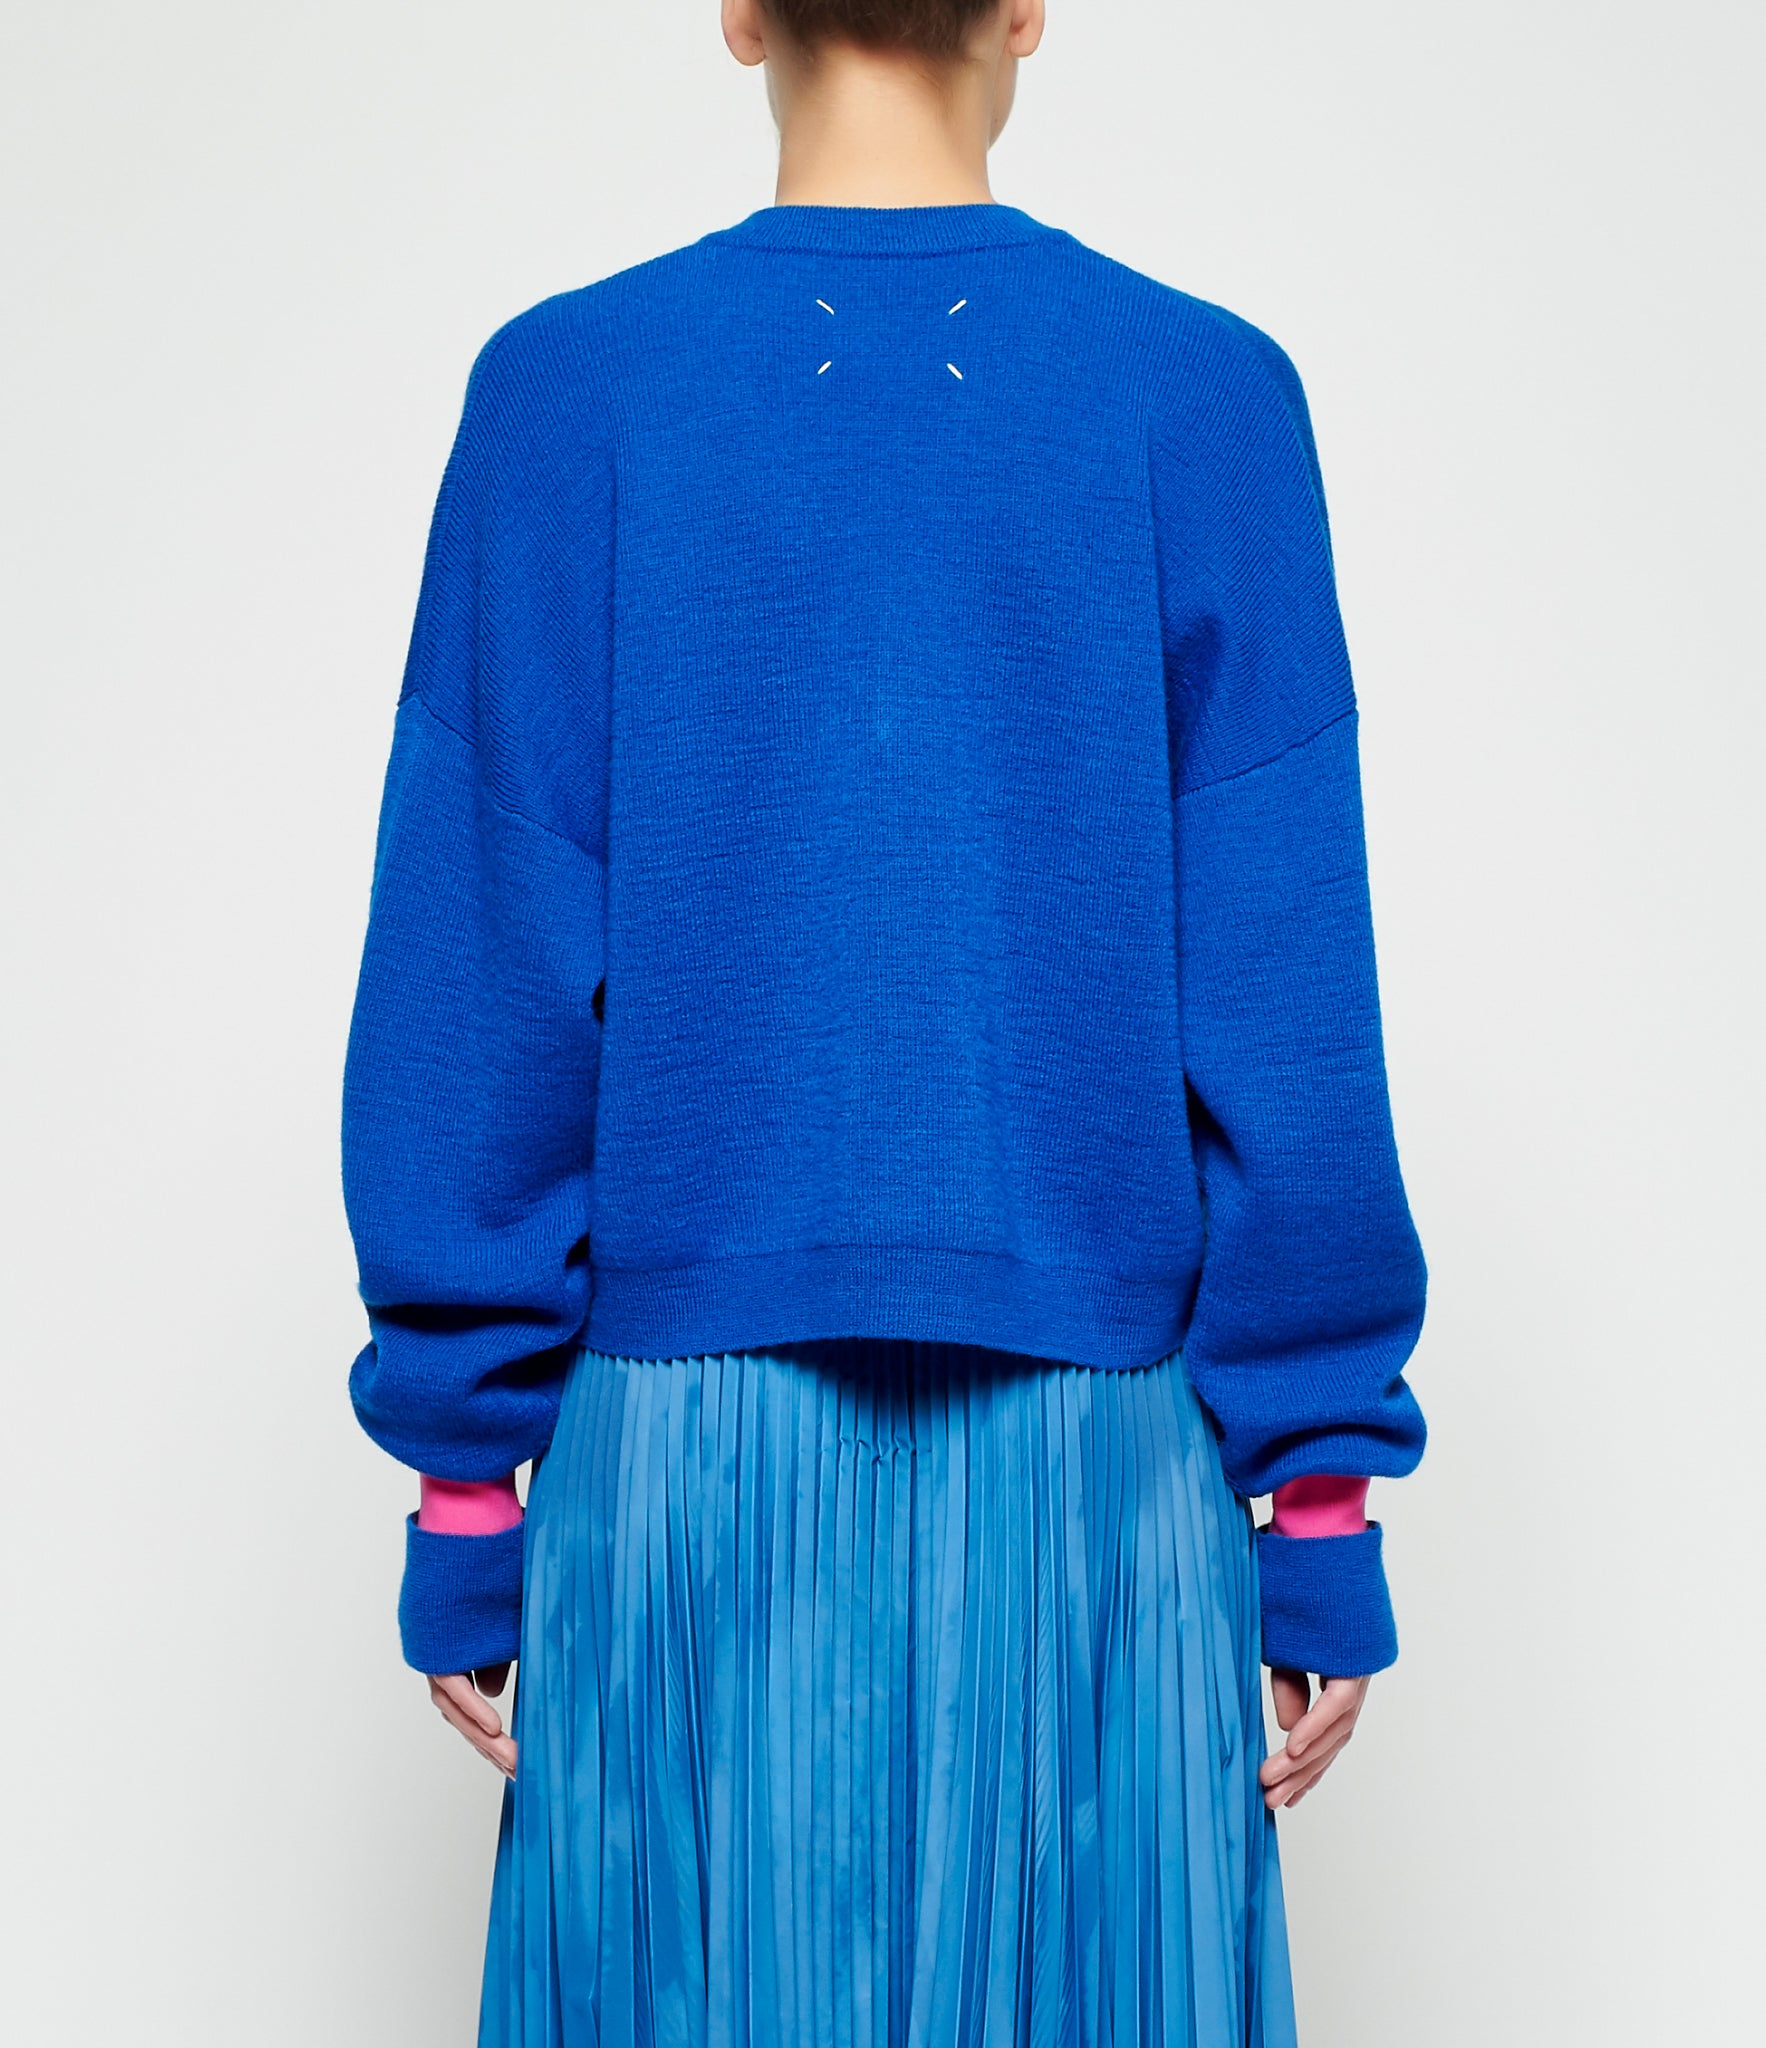 Maison Margiela Heavy Gauge Colorblock Runway Sweater